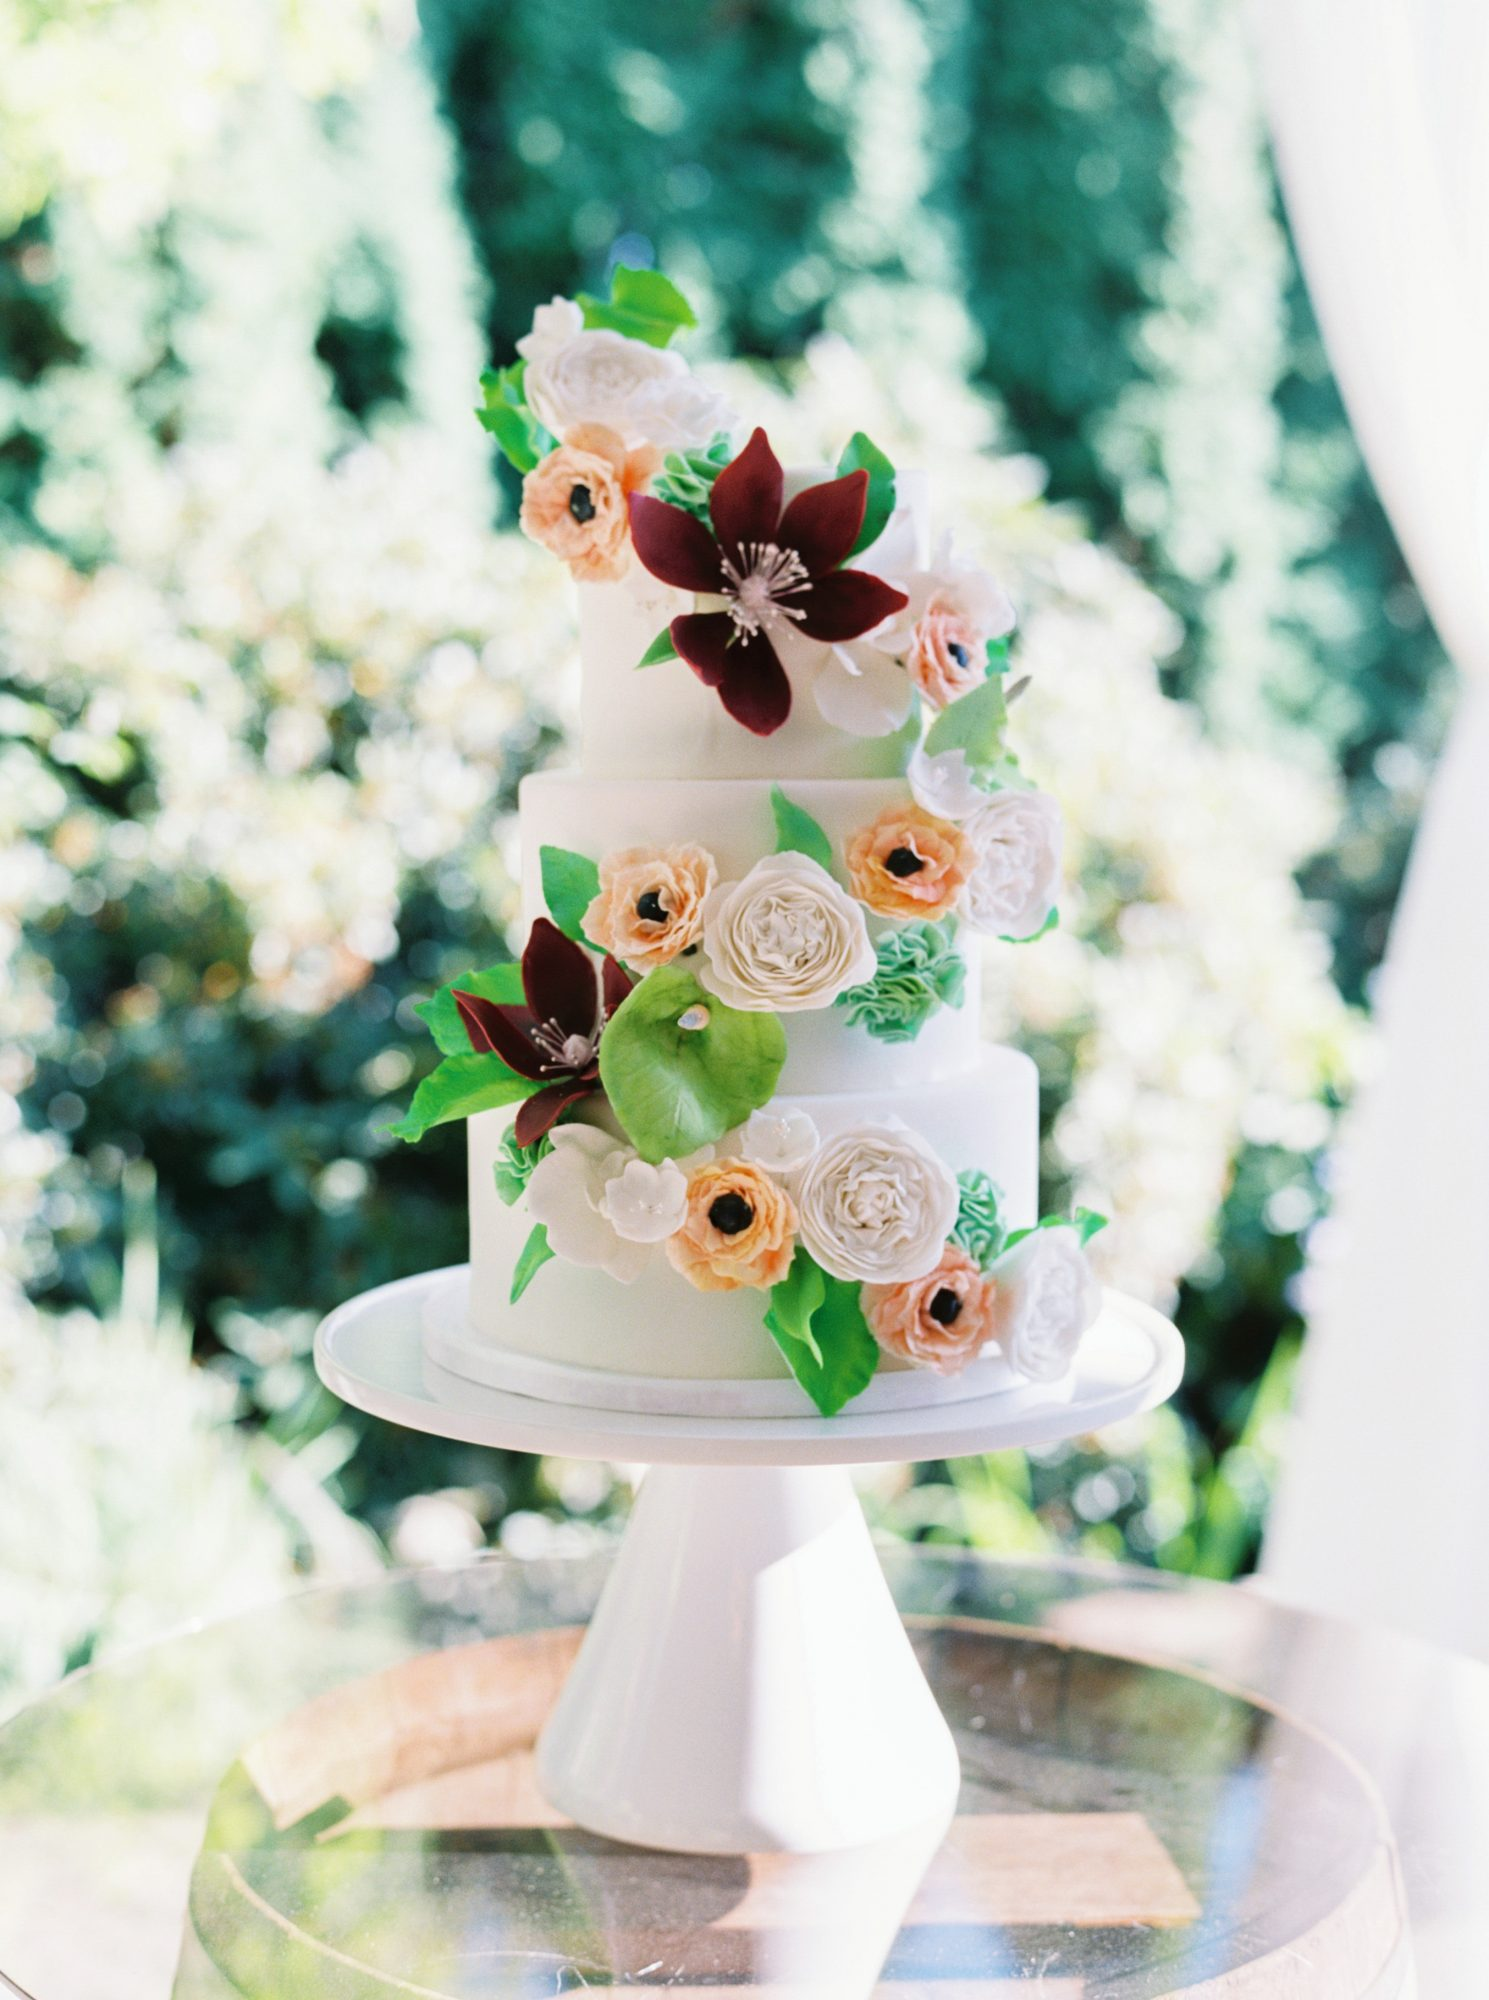 paige matt wedding cake with flowers